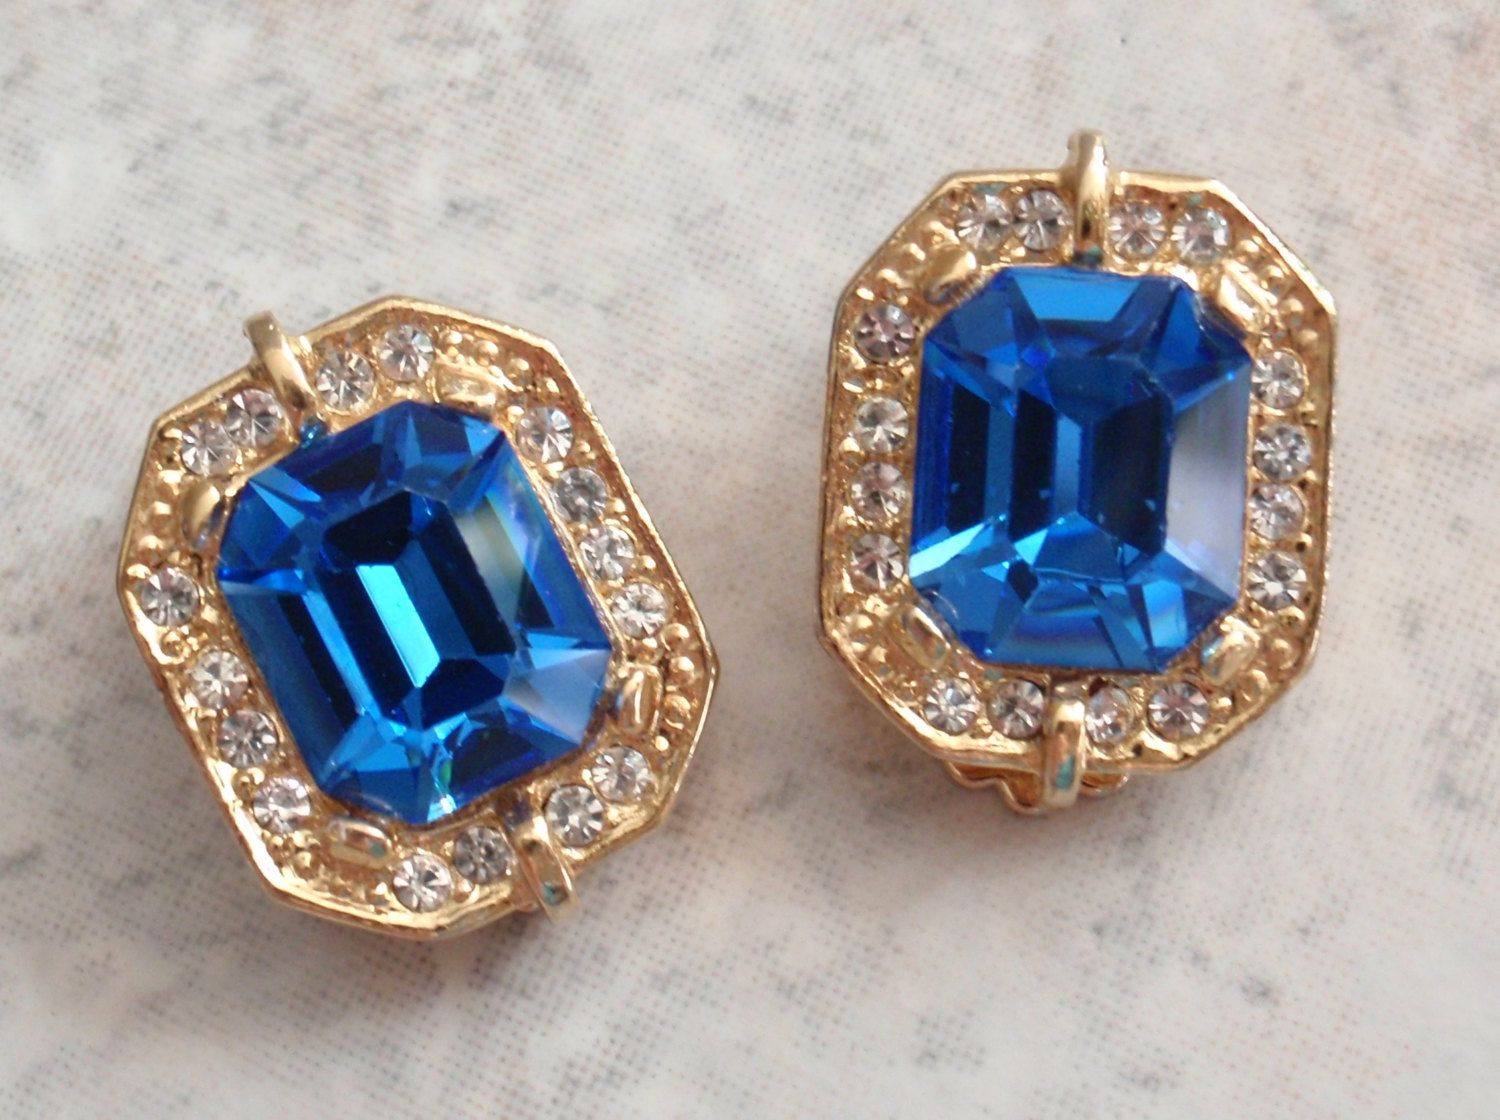 Blue Rhinestone Earrings Gold Tone Clips Square Vintage V0588 By  Cutterstone On Etsy